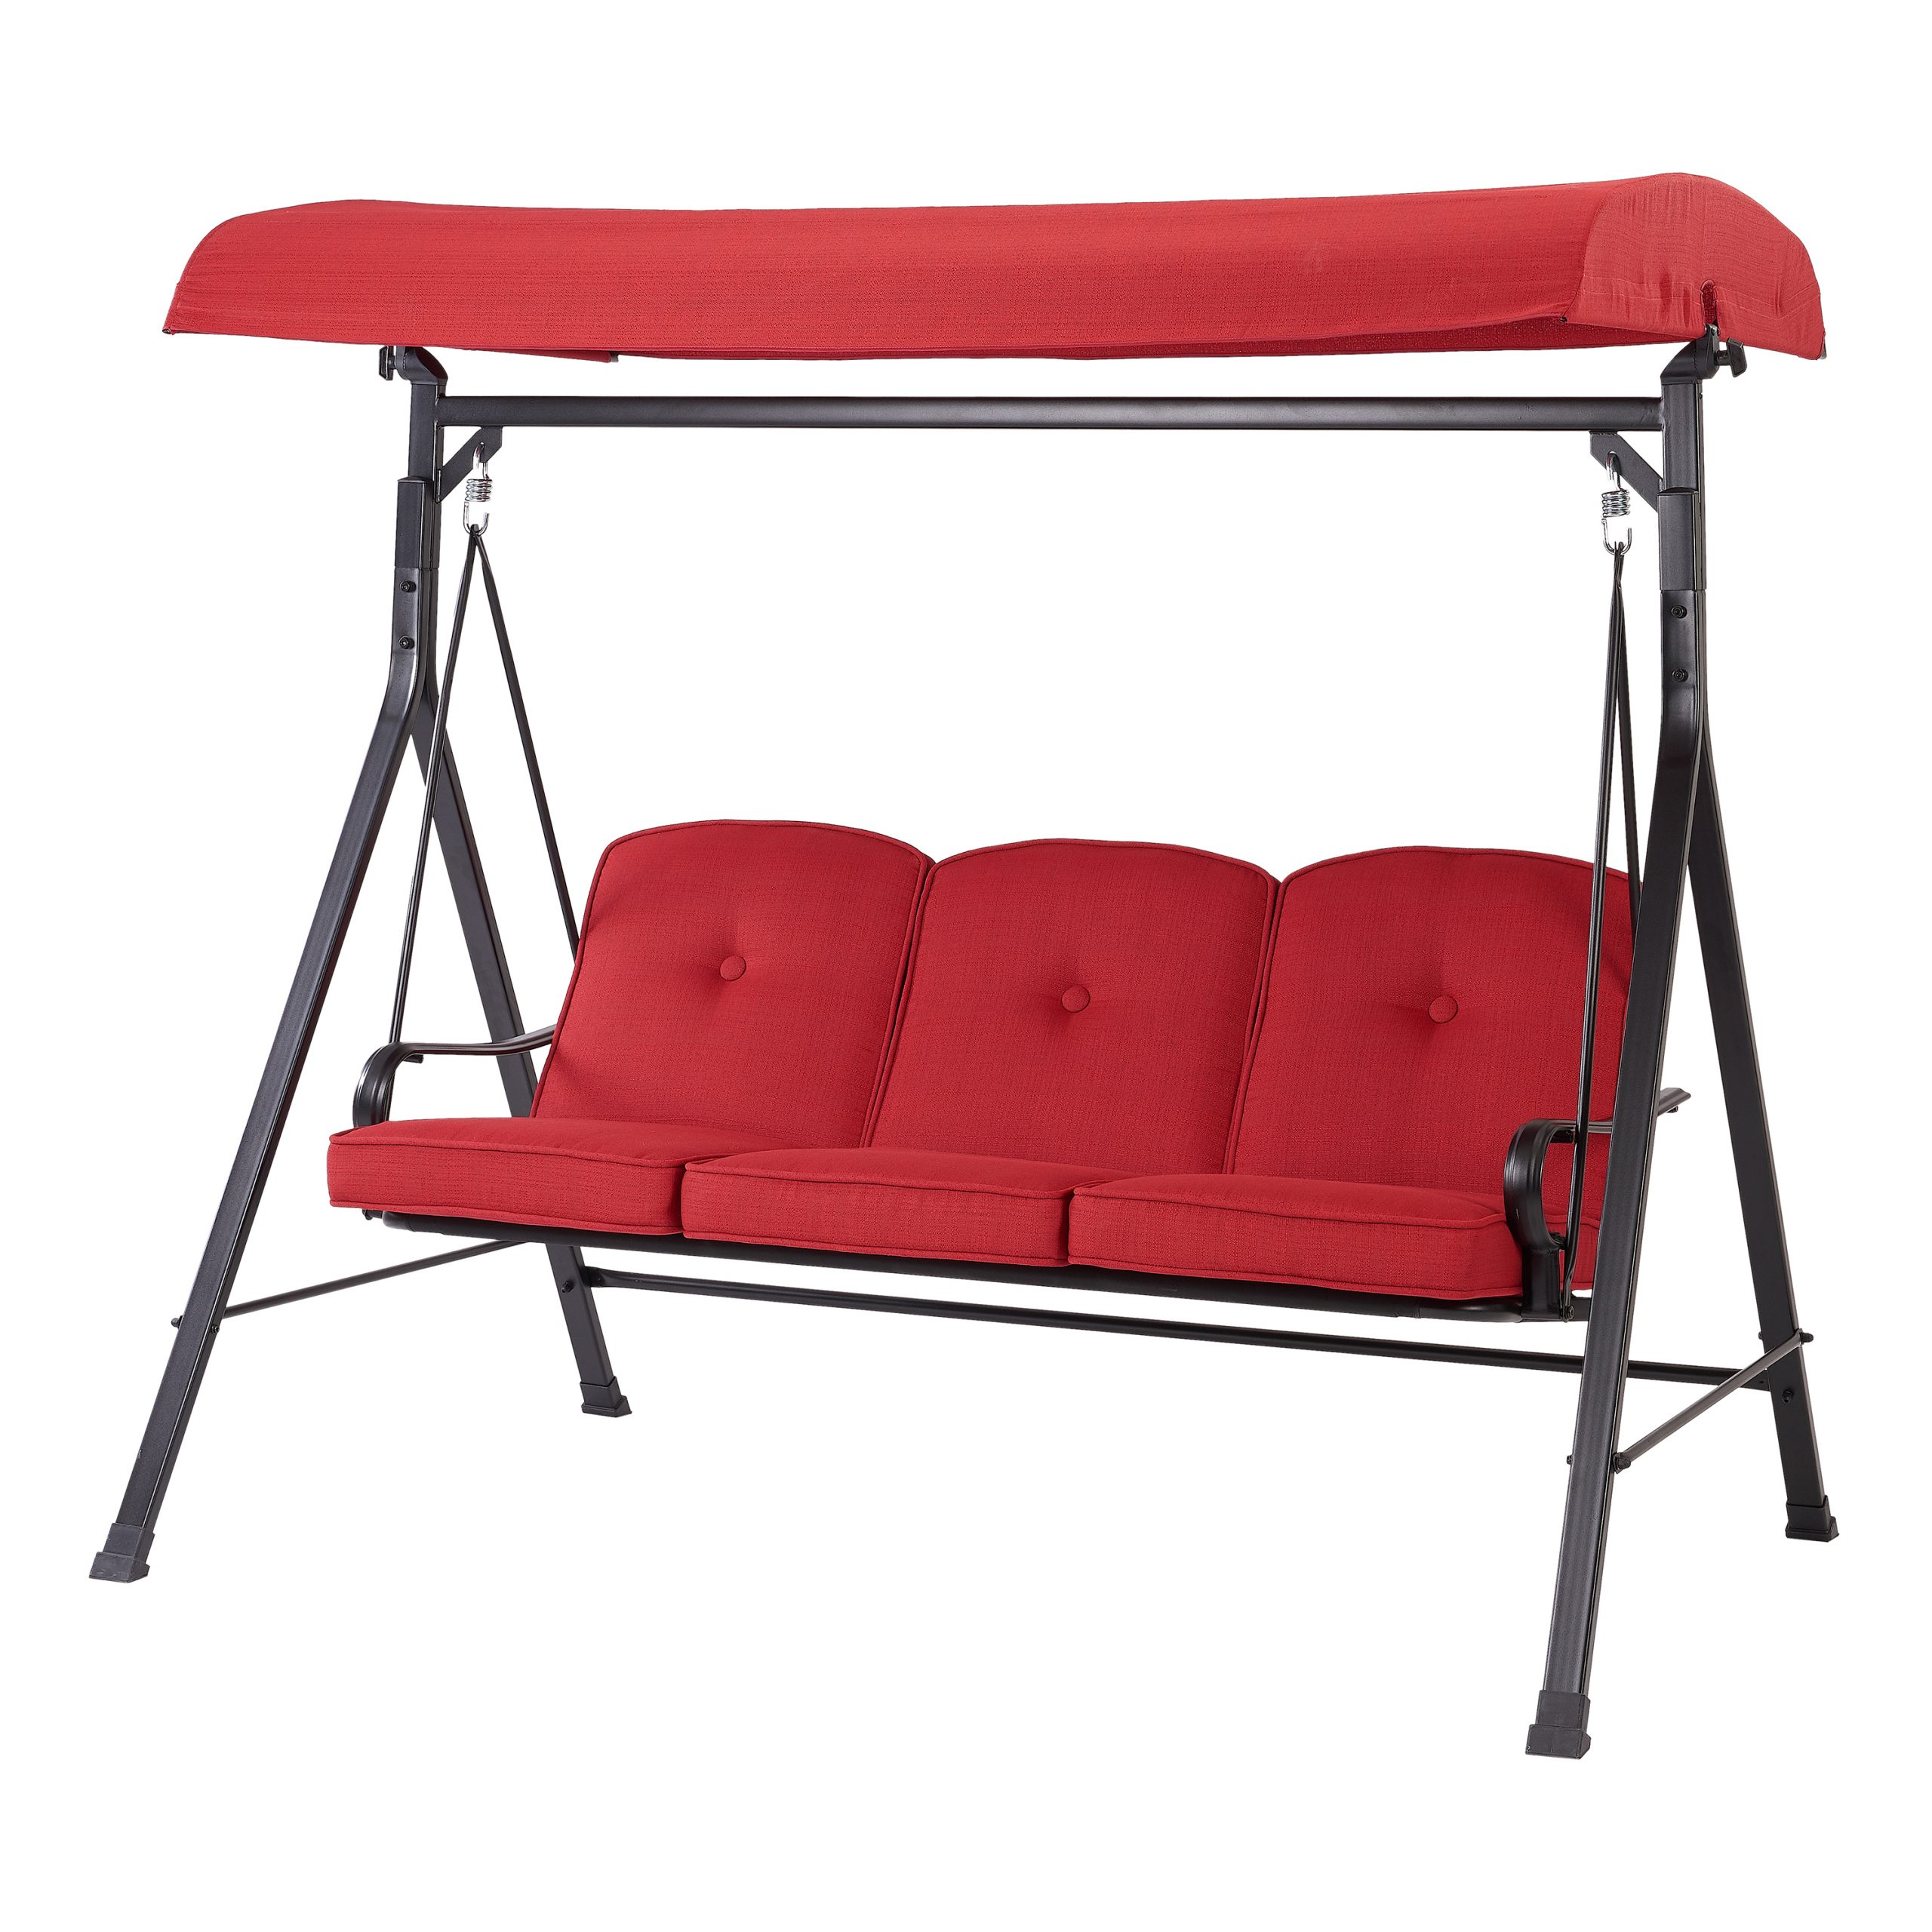 Mainstays Carson Creek Outdoor 3 Seat Porch Swing With Canopy, Red –  Walmart With Canopy Porch Swings (Image 14 of 25)